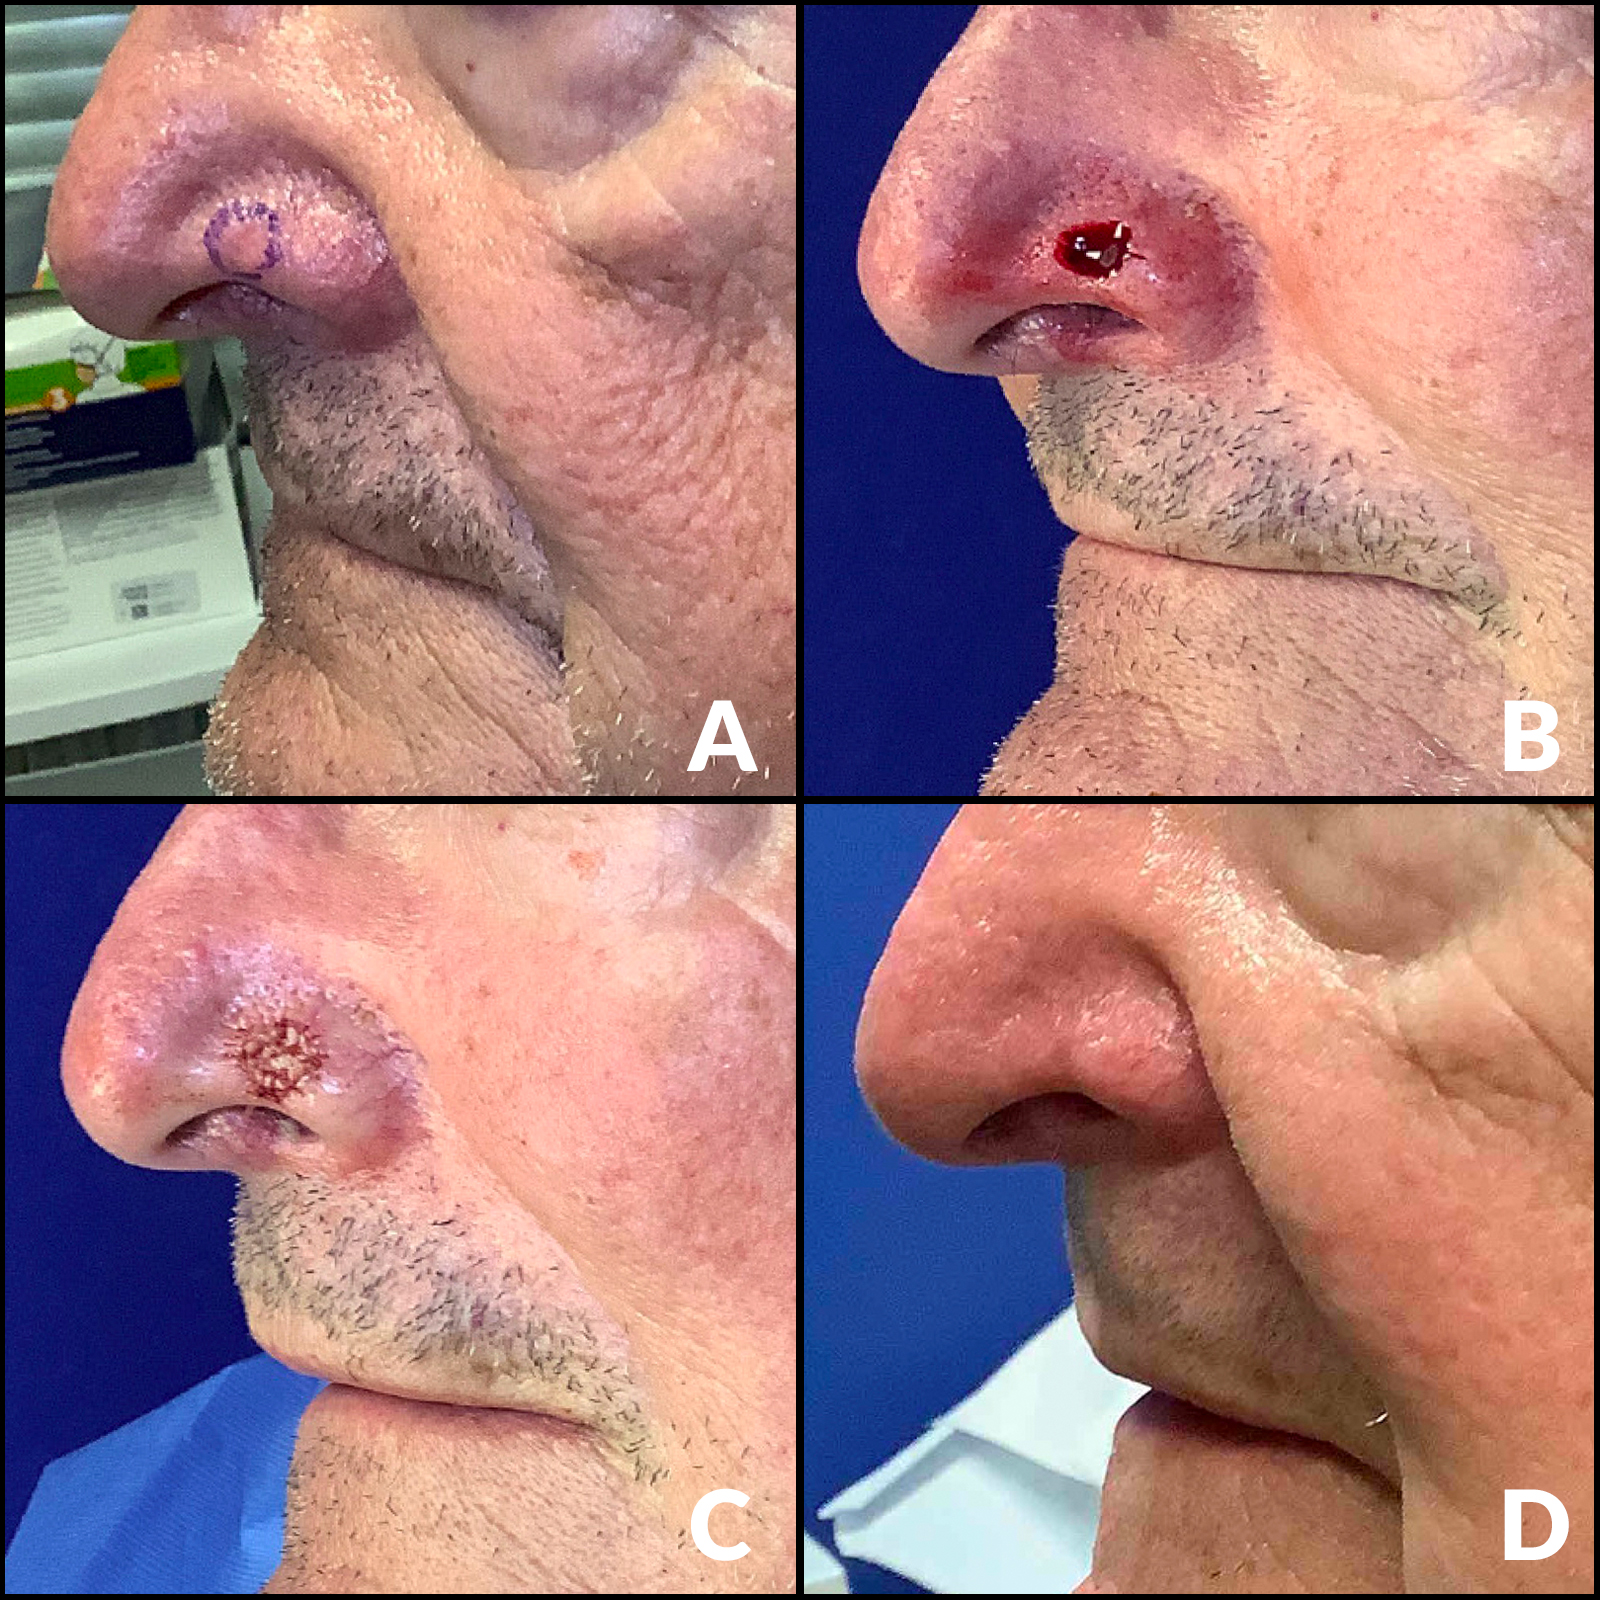 A comparison collage of images for a Mohs surgery patient